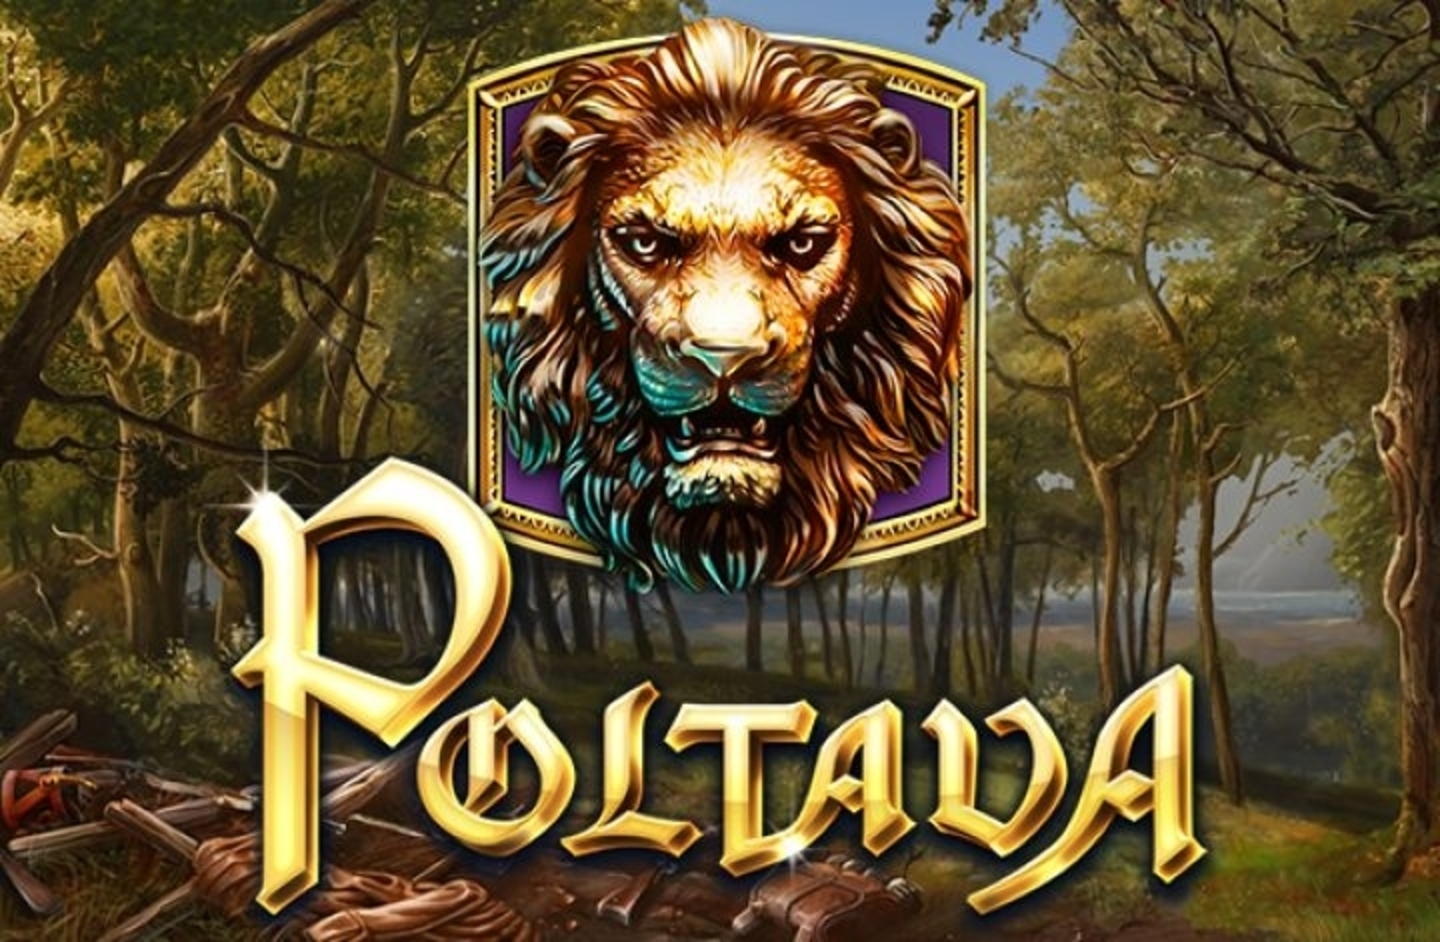 The Poltava - flames of war Online Slot Demo Game by ELK Studios